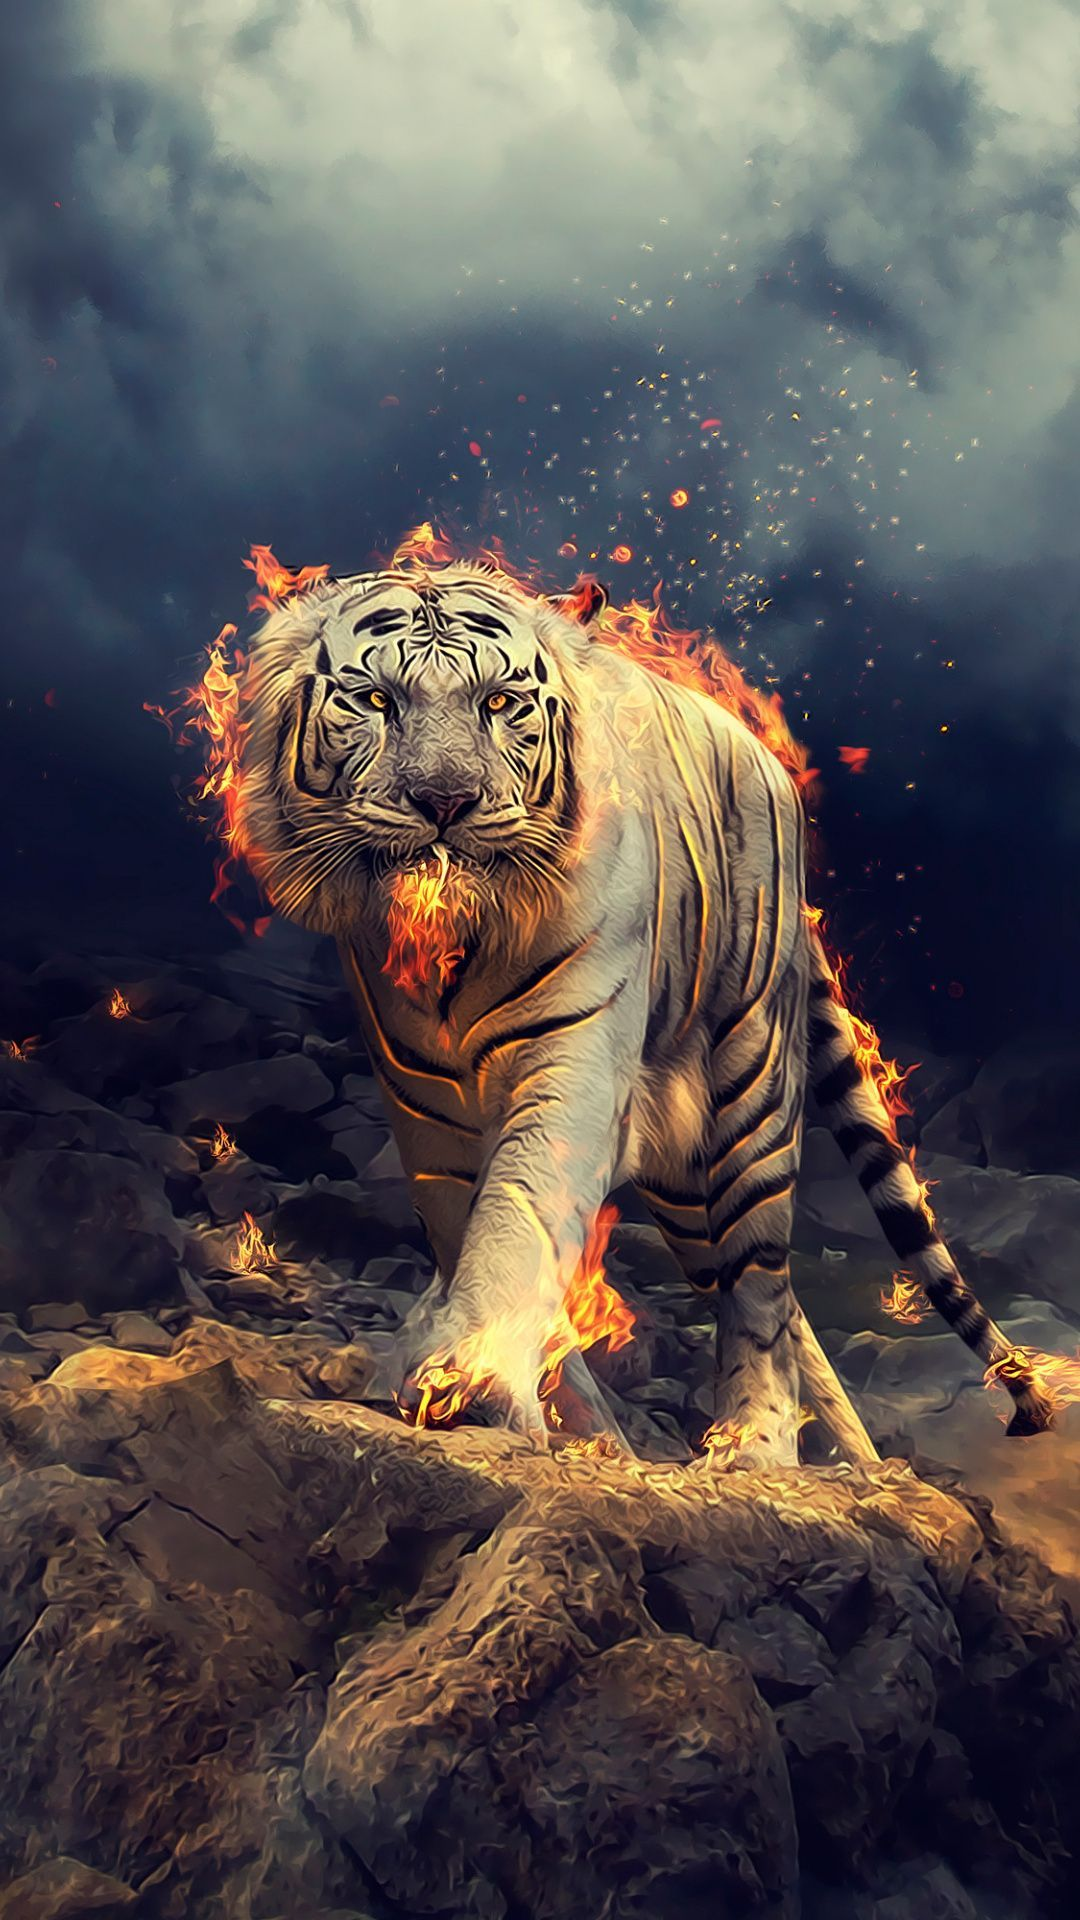 Angry Angry White Tiger 1080x1920 Wallpaper In 2020 Tiger Wallpaper Tiger Wallpaper Iphone Wild Animal Wallpaper